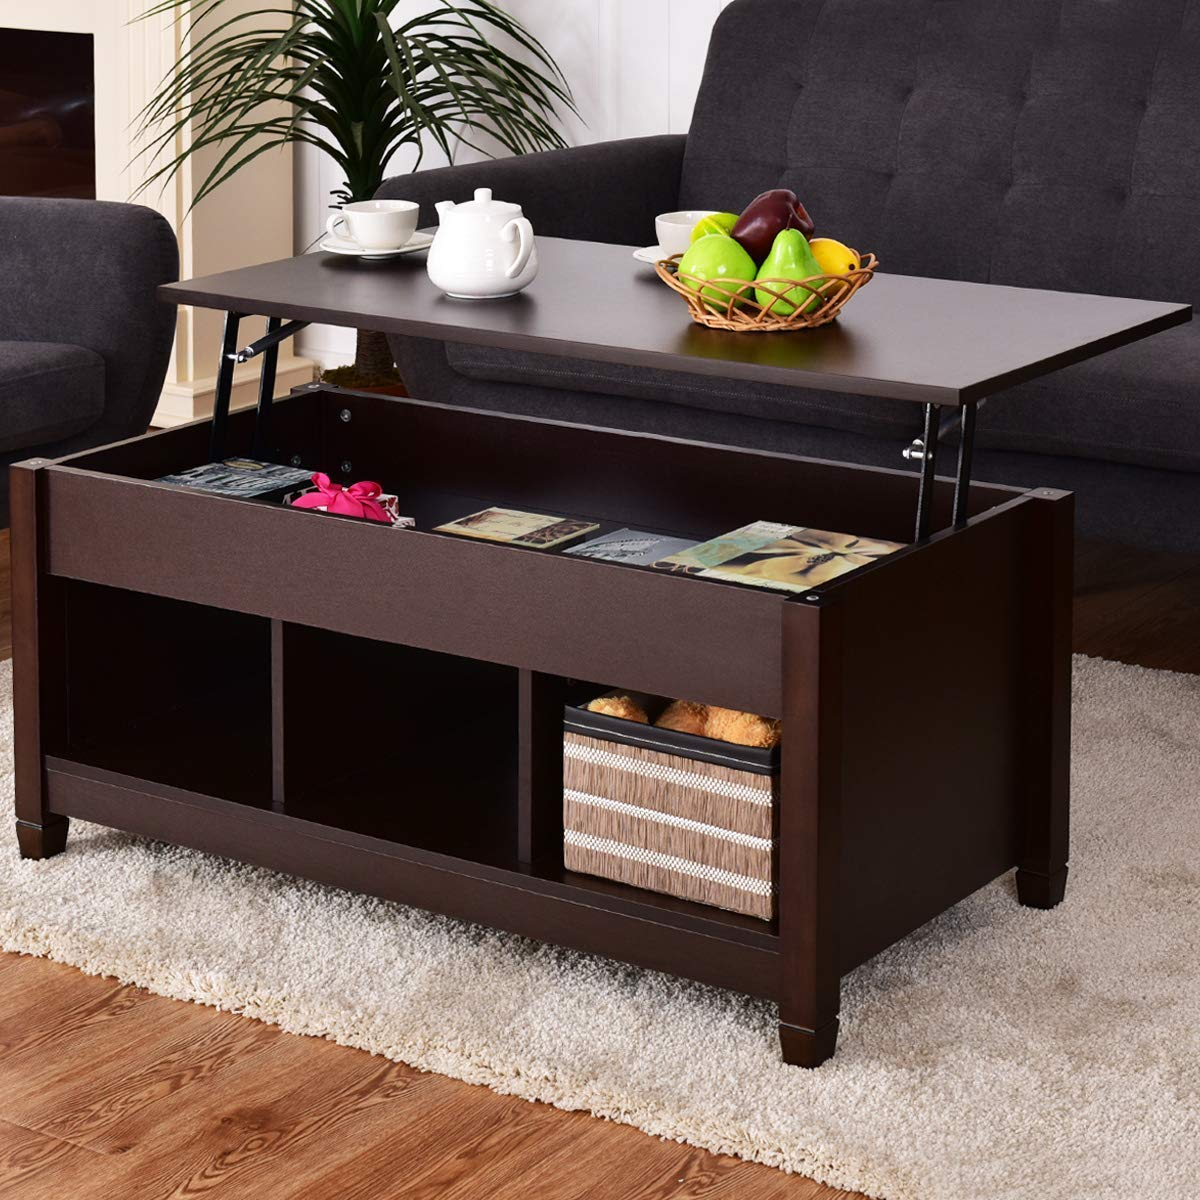 Johannesburg Coffee Table Modern Features: NEW MODERN COFFEE TABLE LIFT TOP END TABLE STORAGE